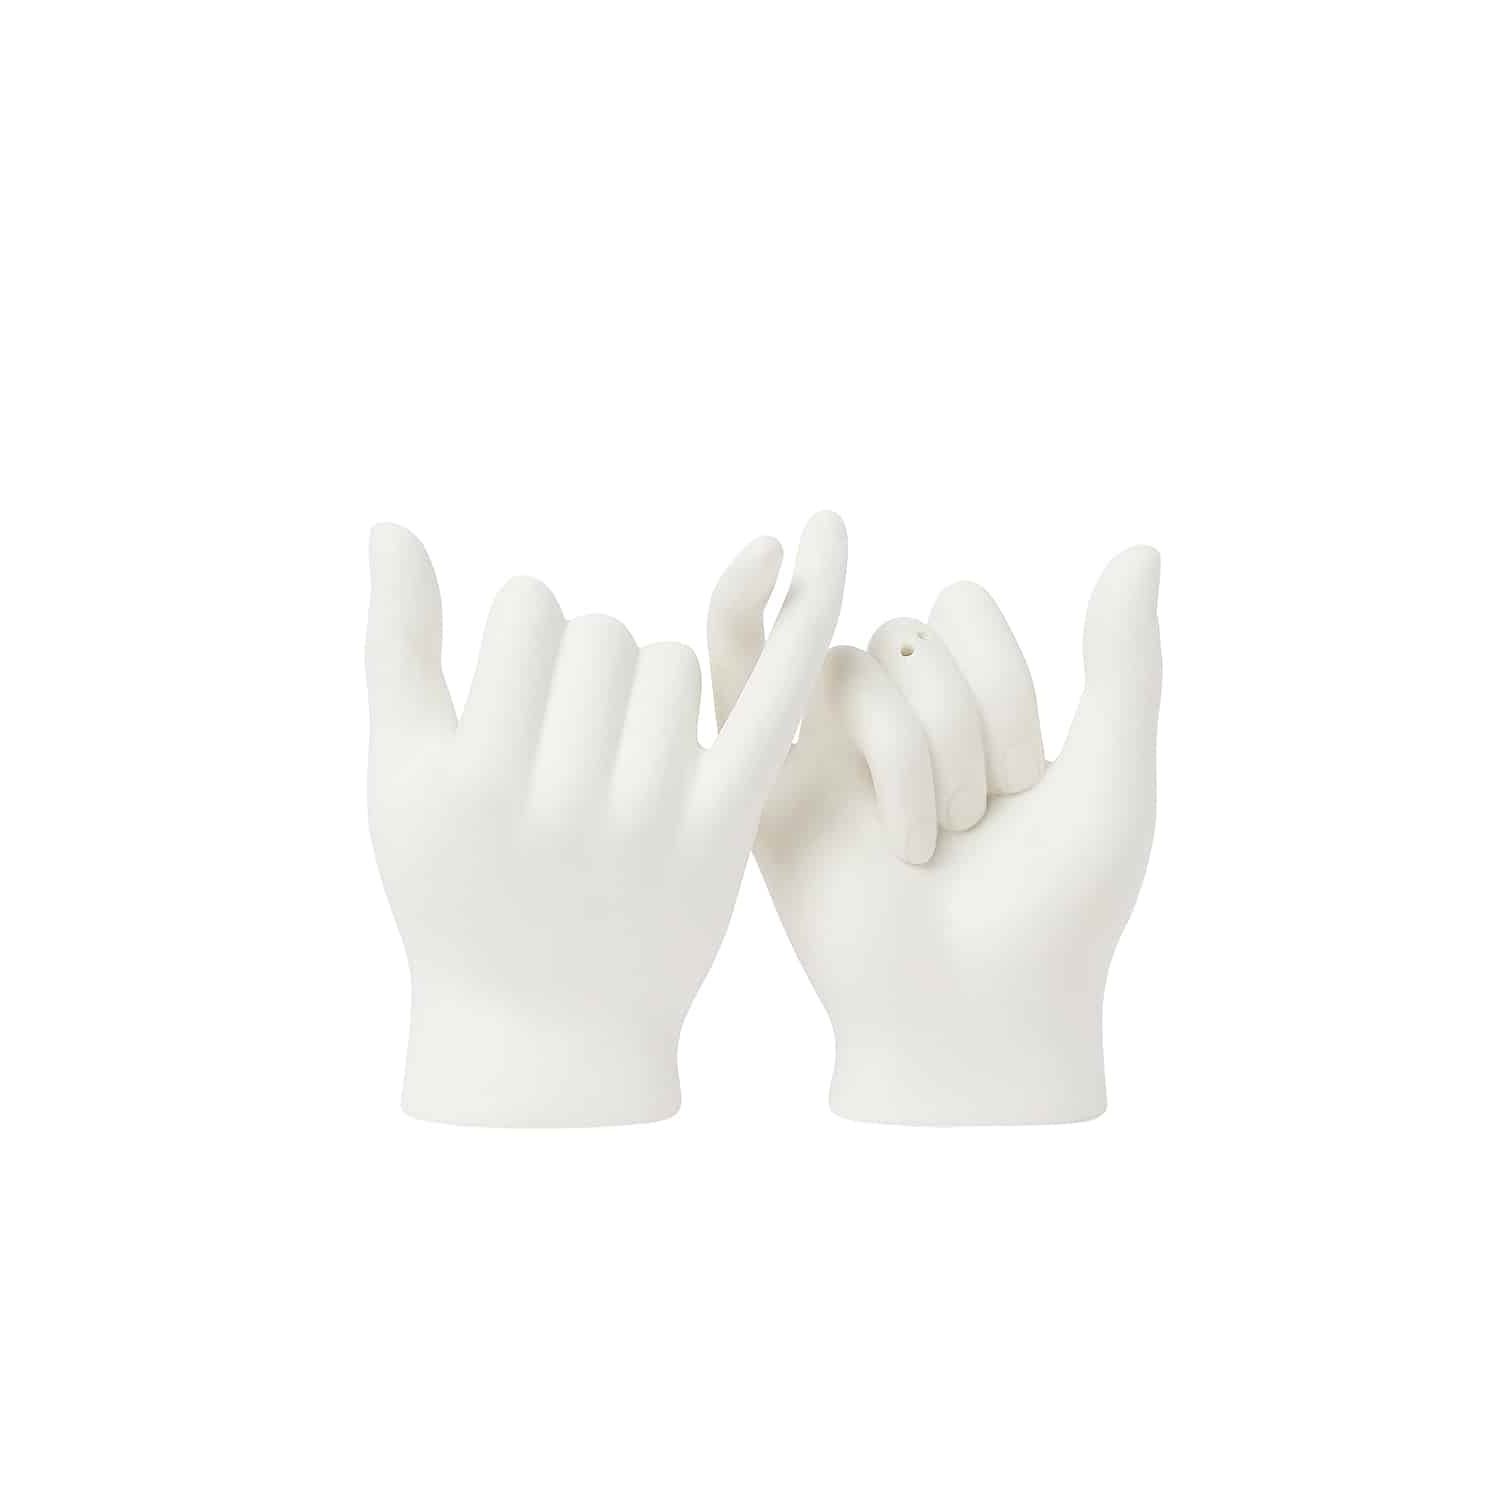 Pinky swear salt & peper shakers